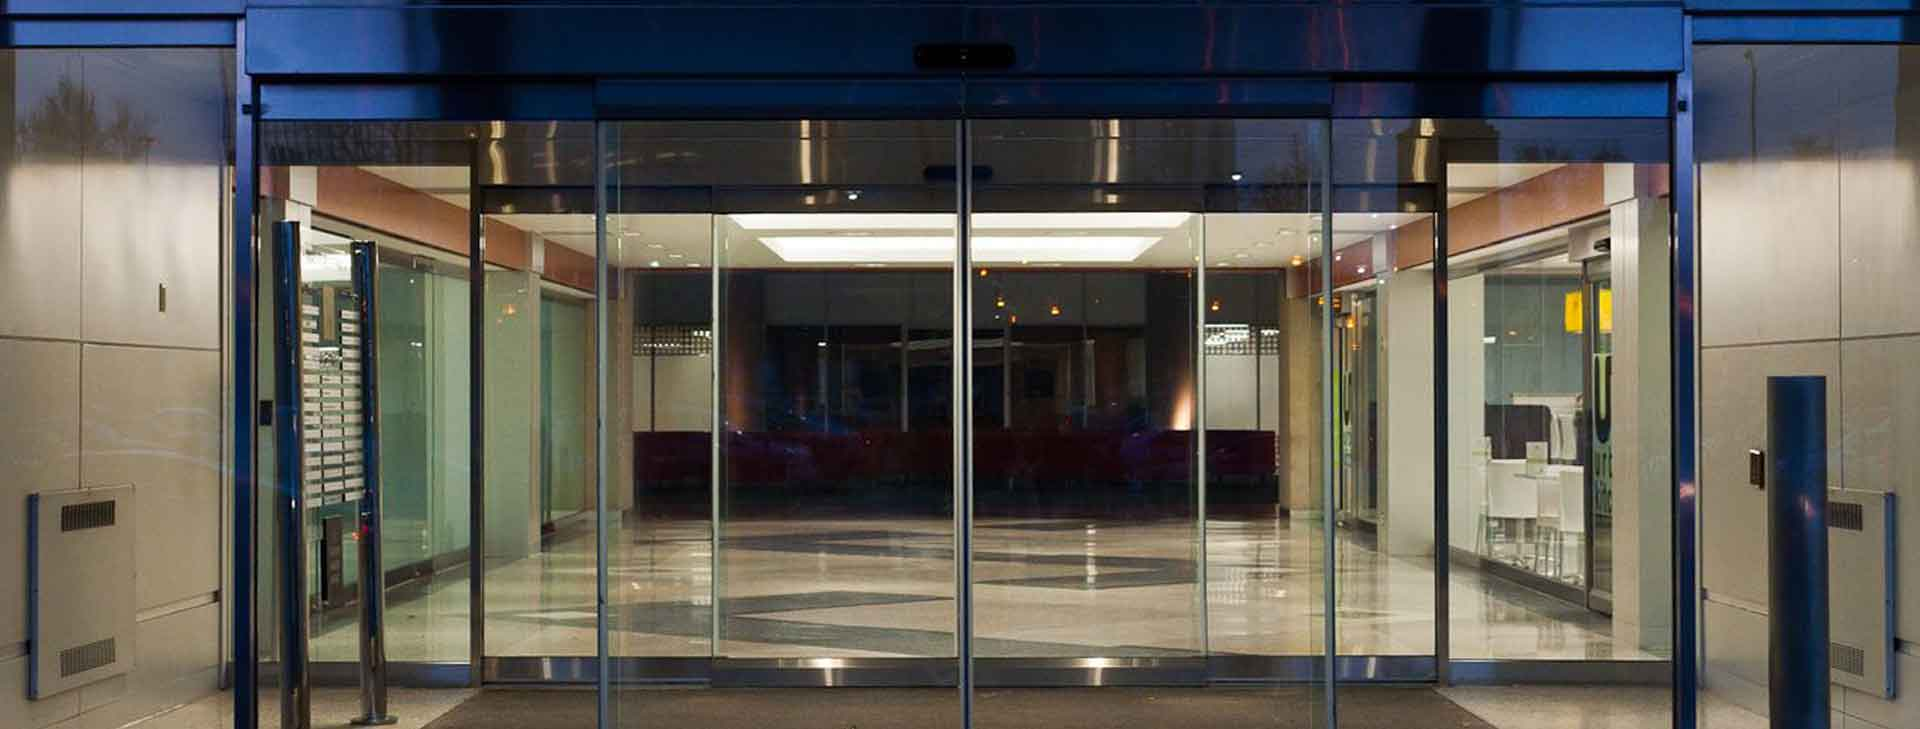 Automatic Sliding Door & Automatic Sliding Door- Buy Product on Guangzhou Topbright ... Pezcame.Com